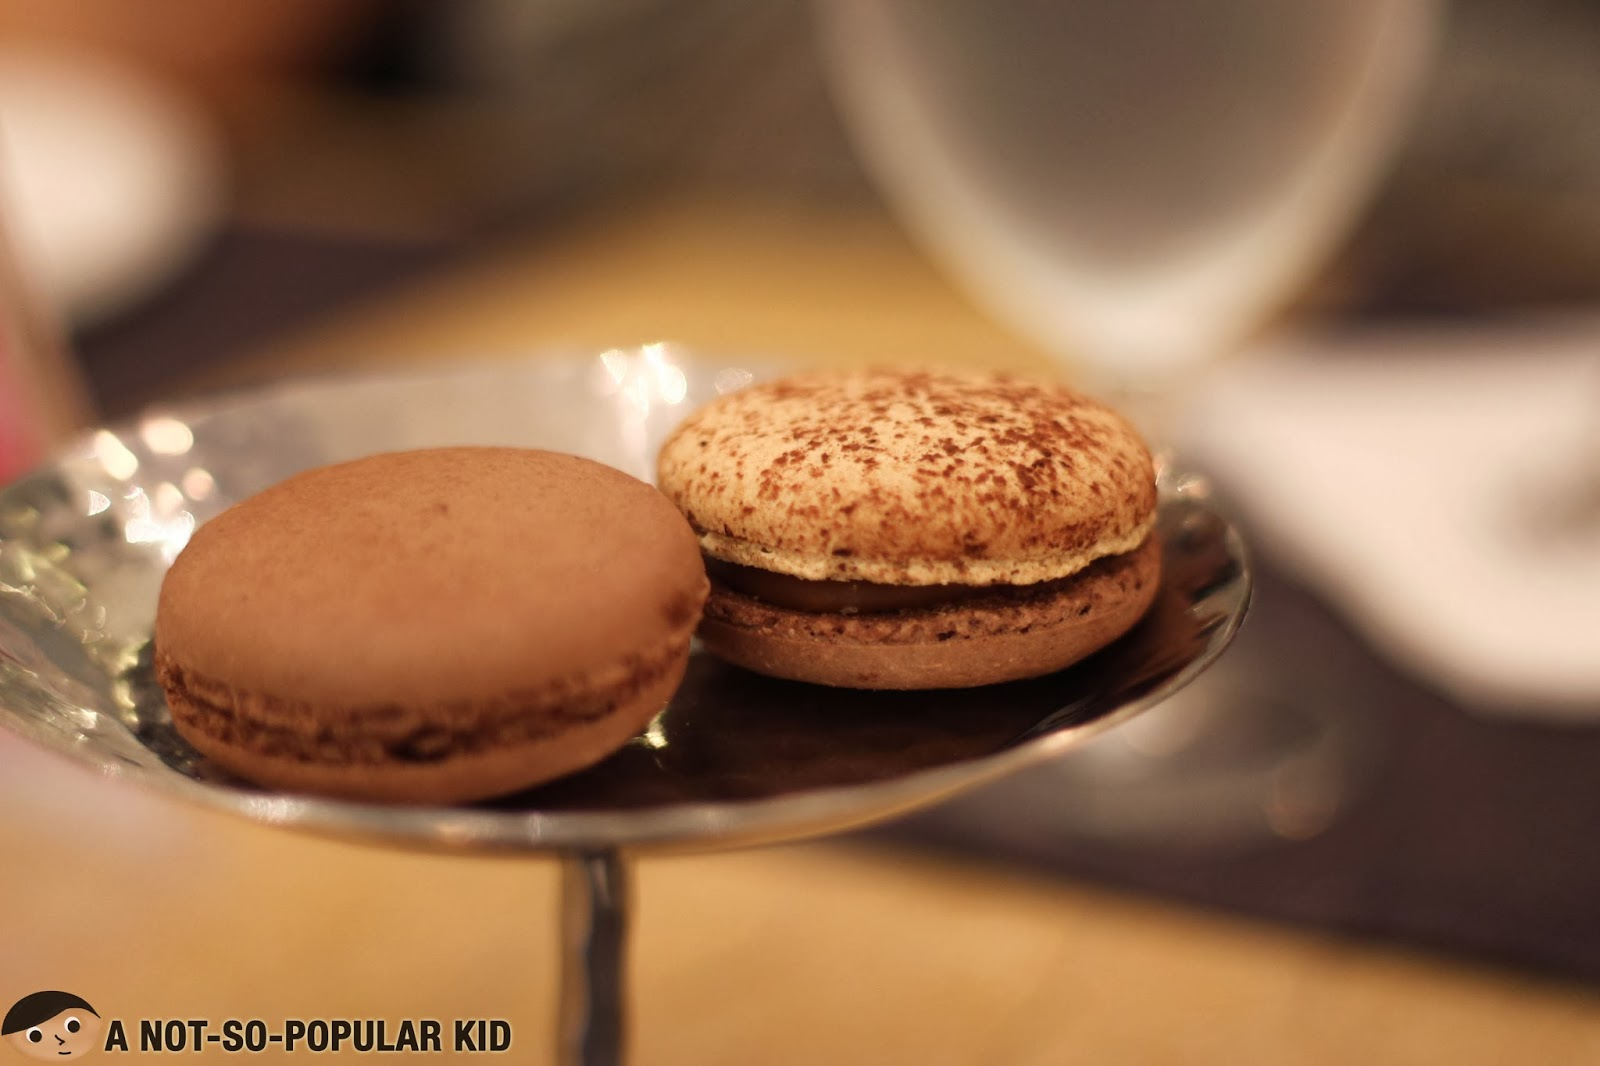 Dark Chocolate and Caramel Fleur de Sel Macarons of BIZU